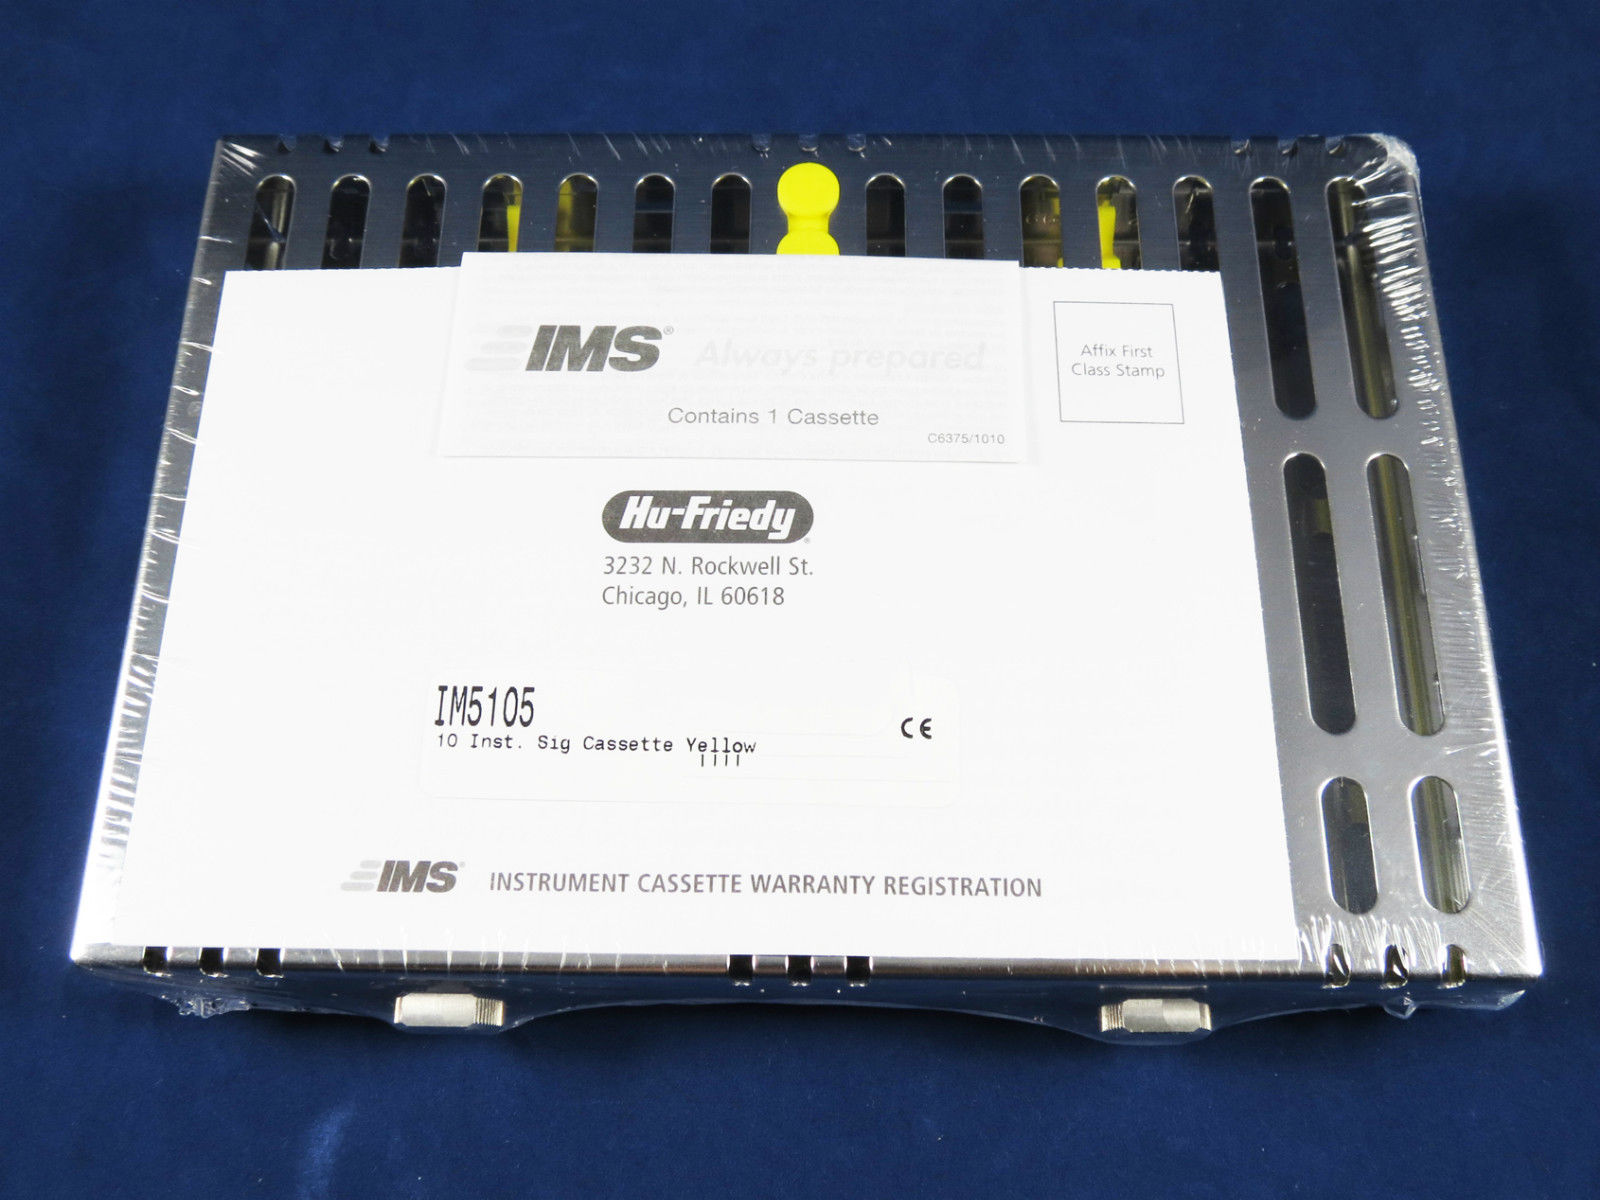 HF IMS CASSETTE 10 I NST. SIGN. IM5105